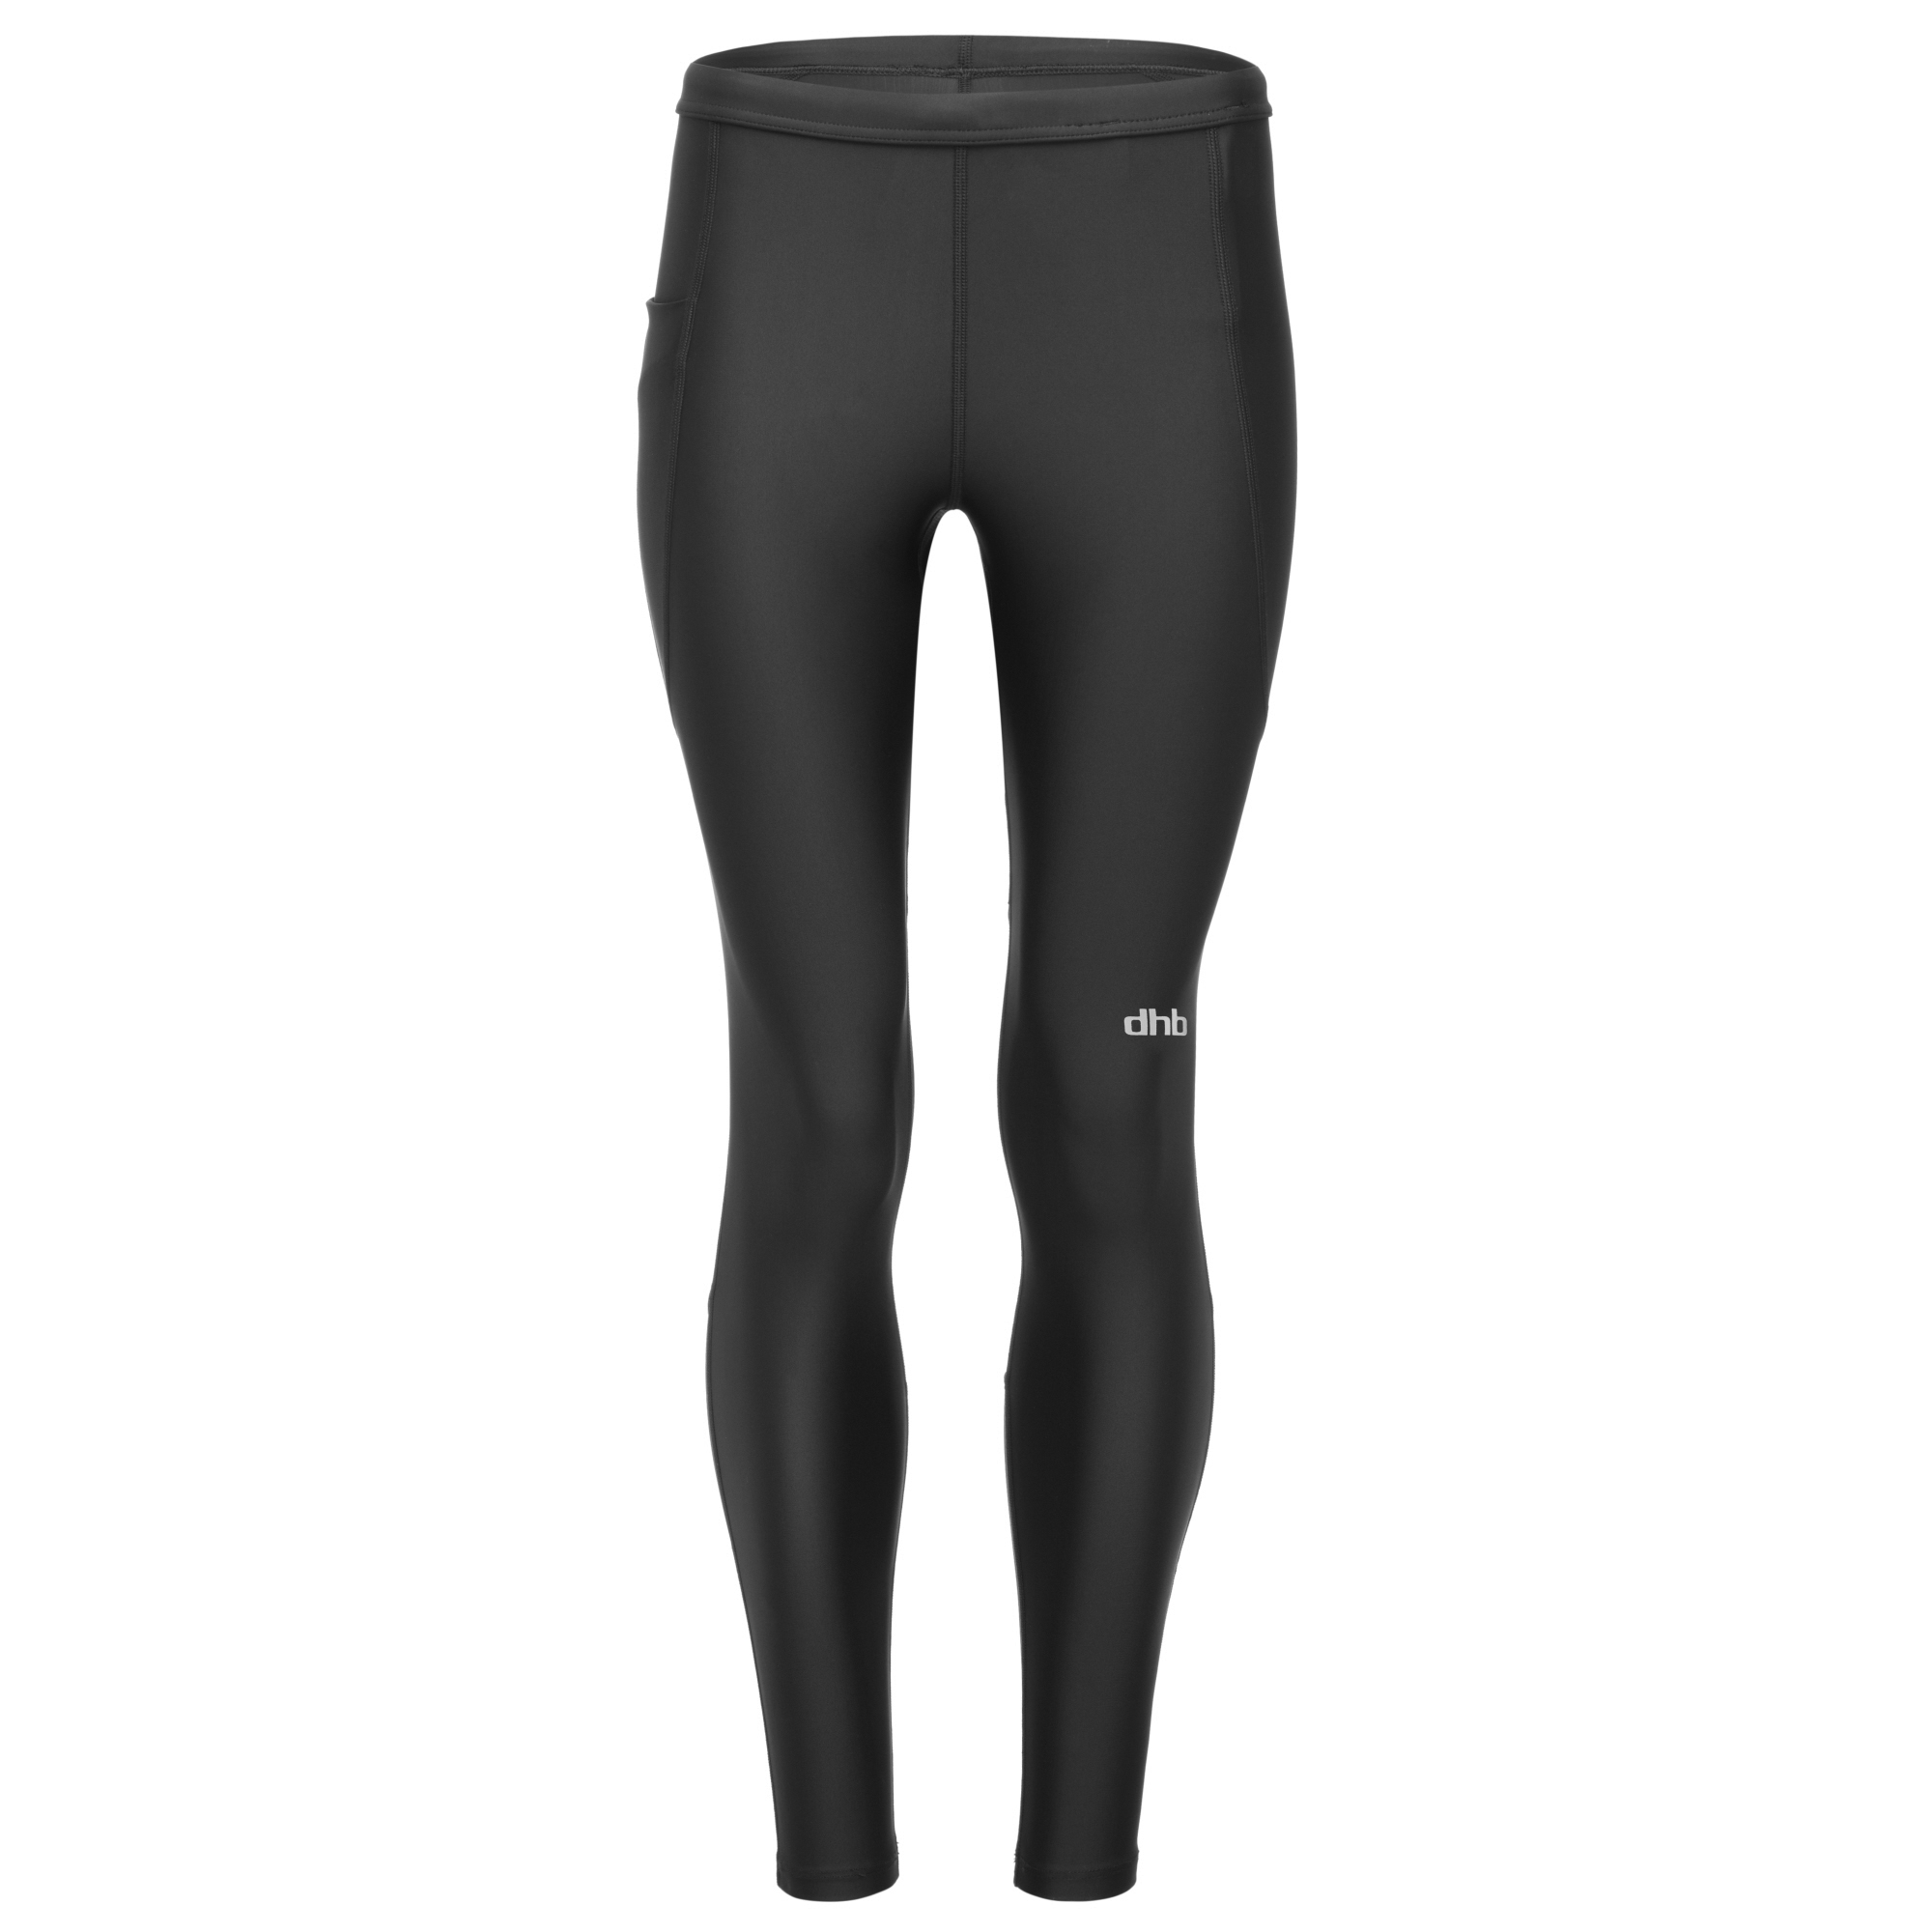 dhb Aeron Bib Shorts Men - black/black | Trousers